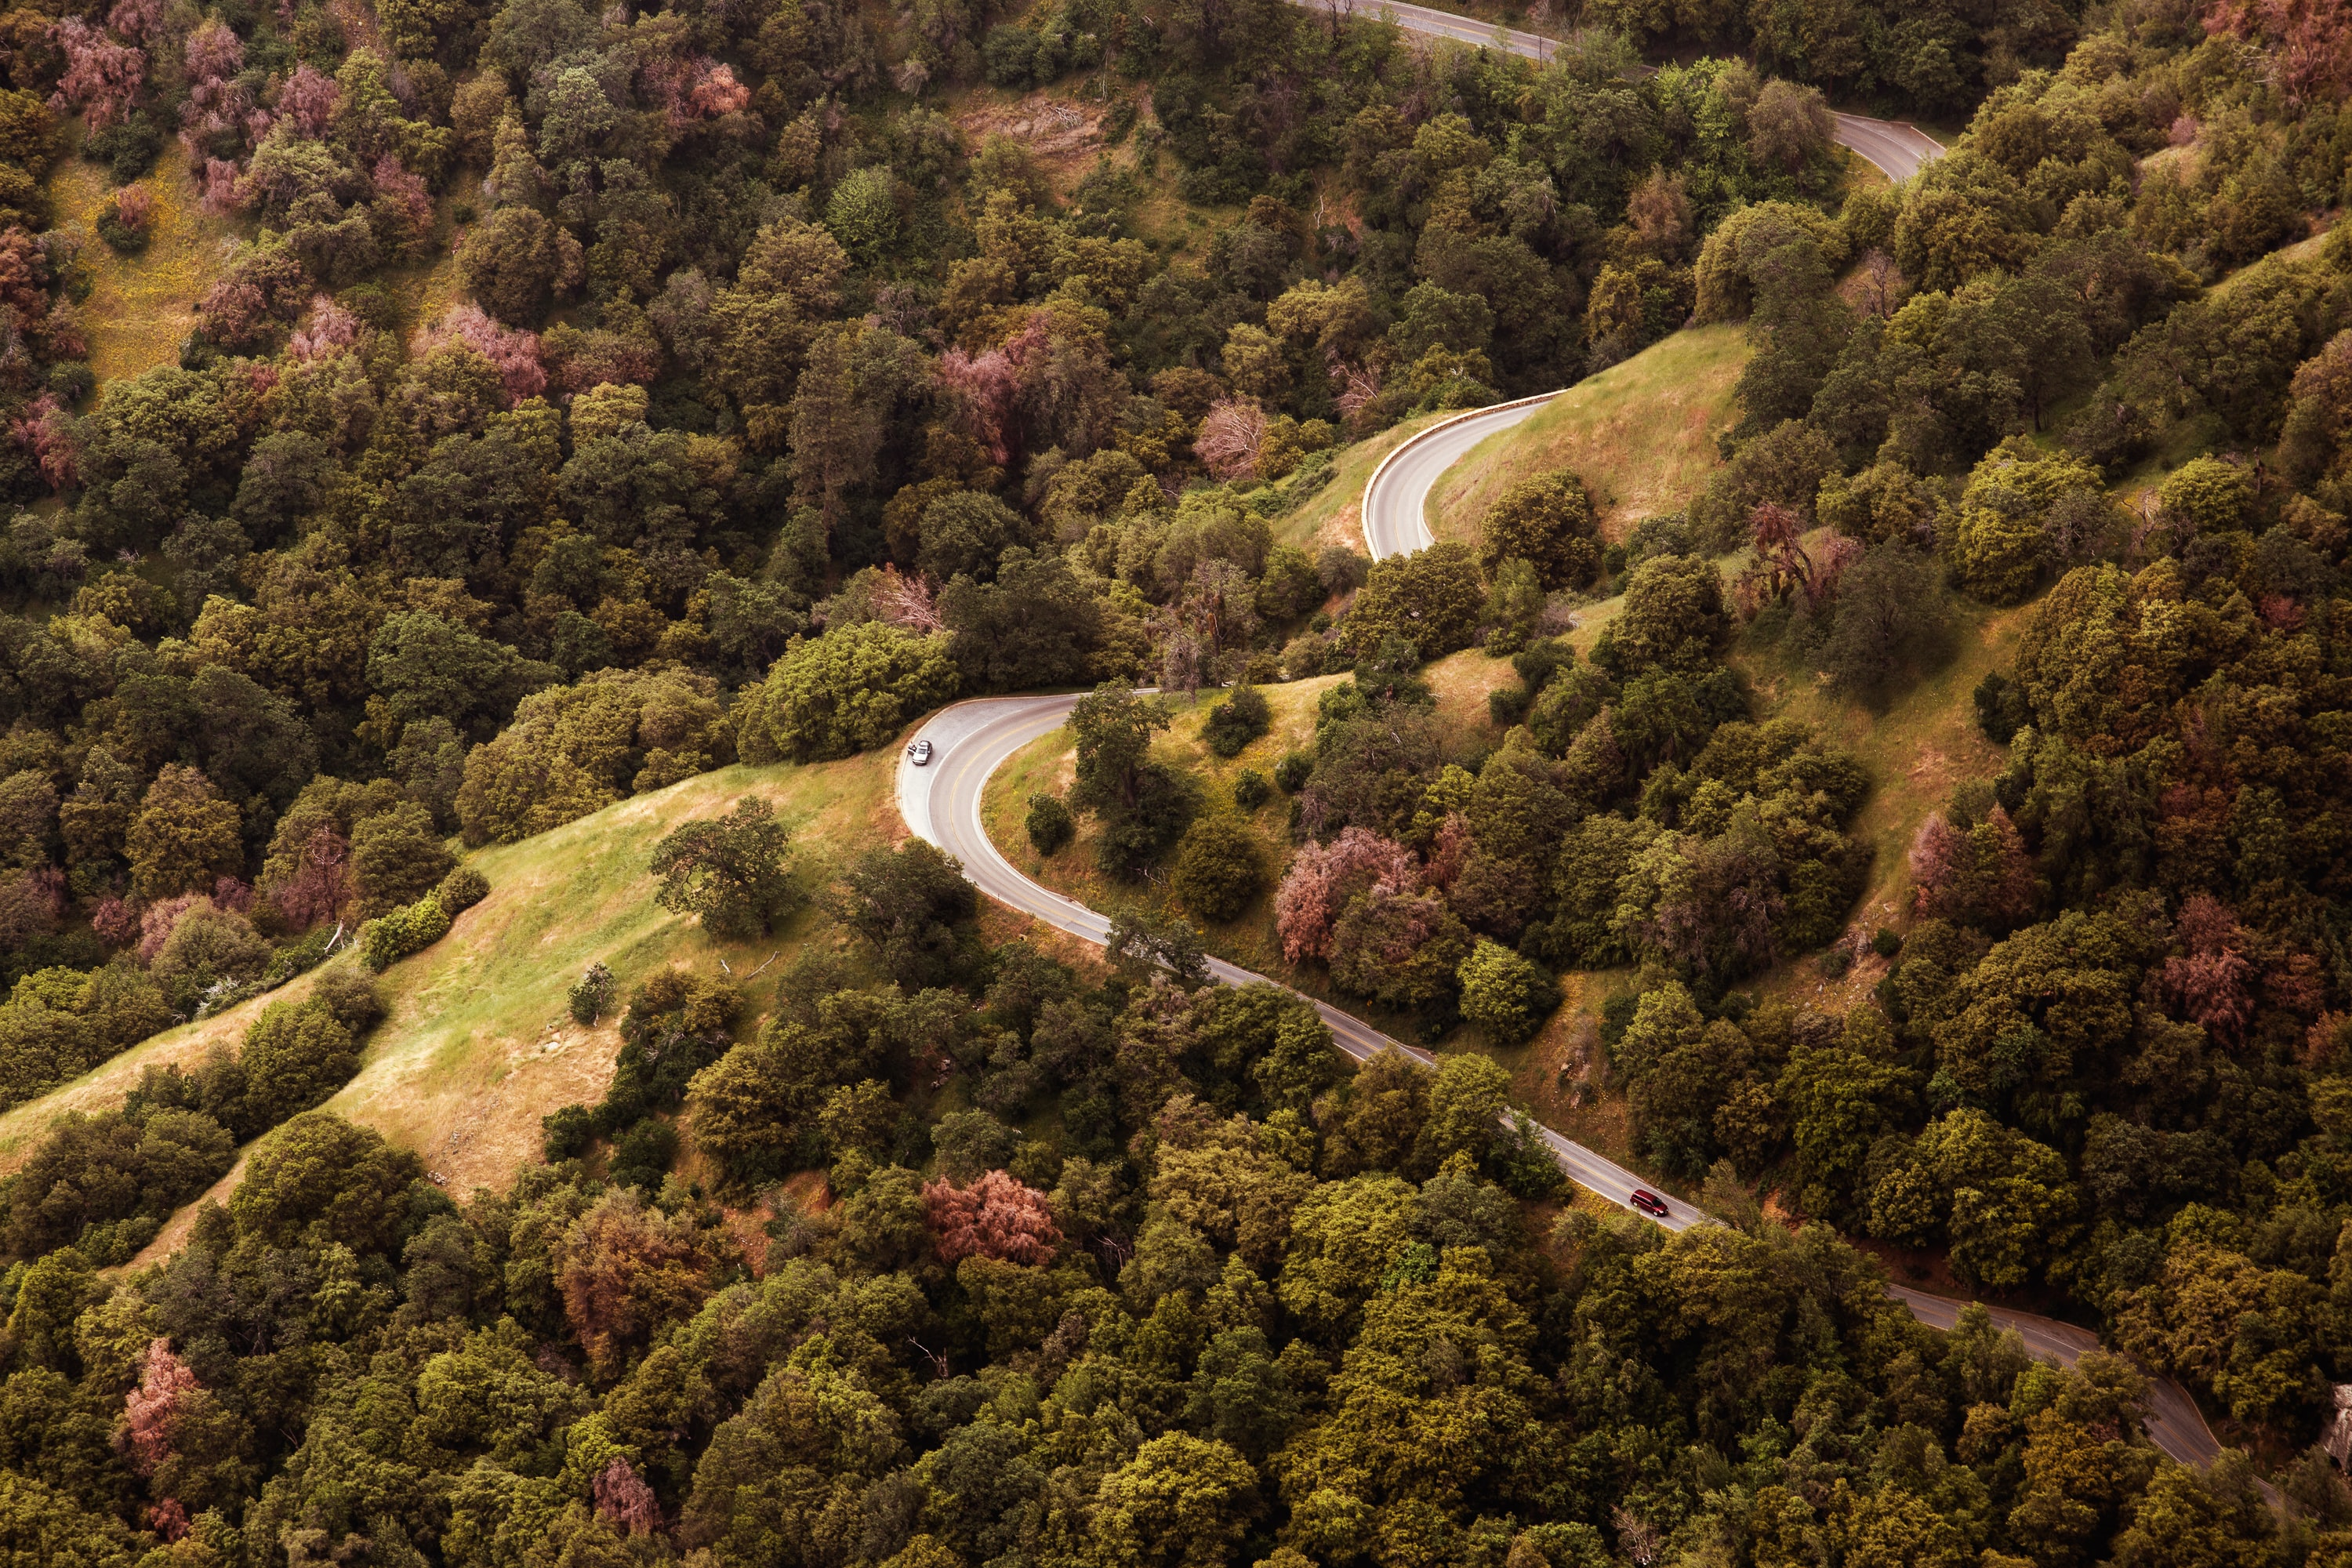 Car on winding forest highway on slope with trees in California